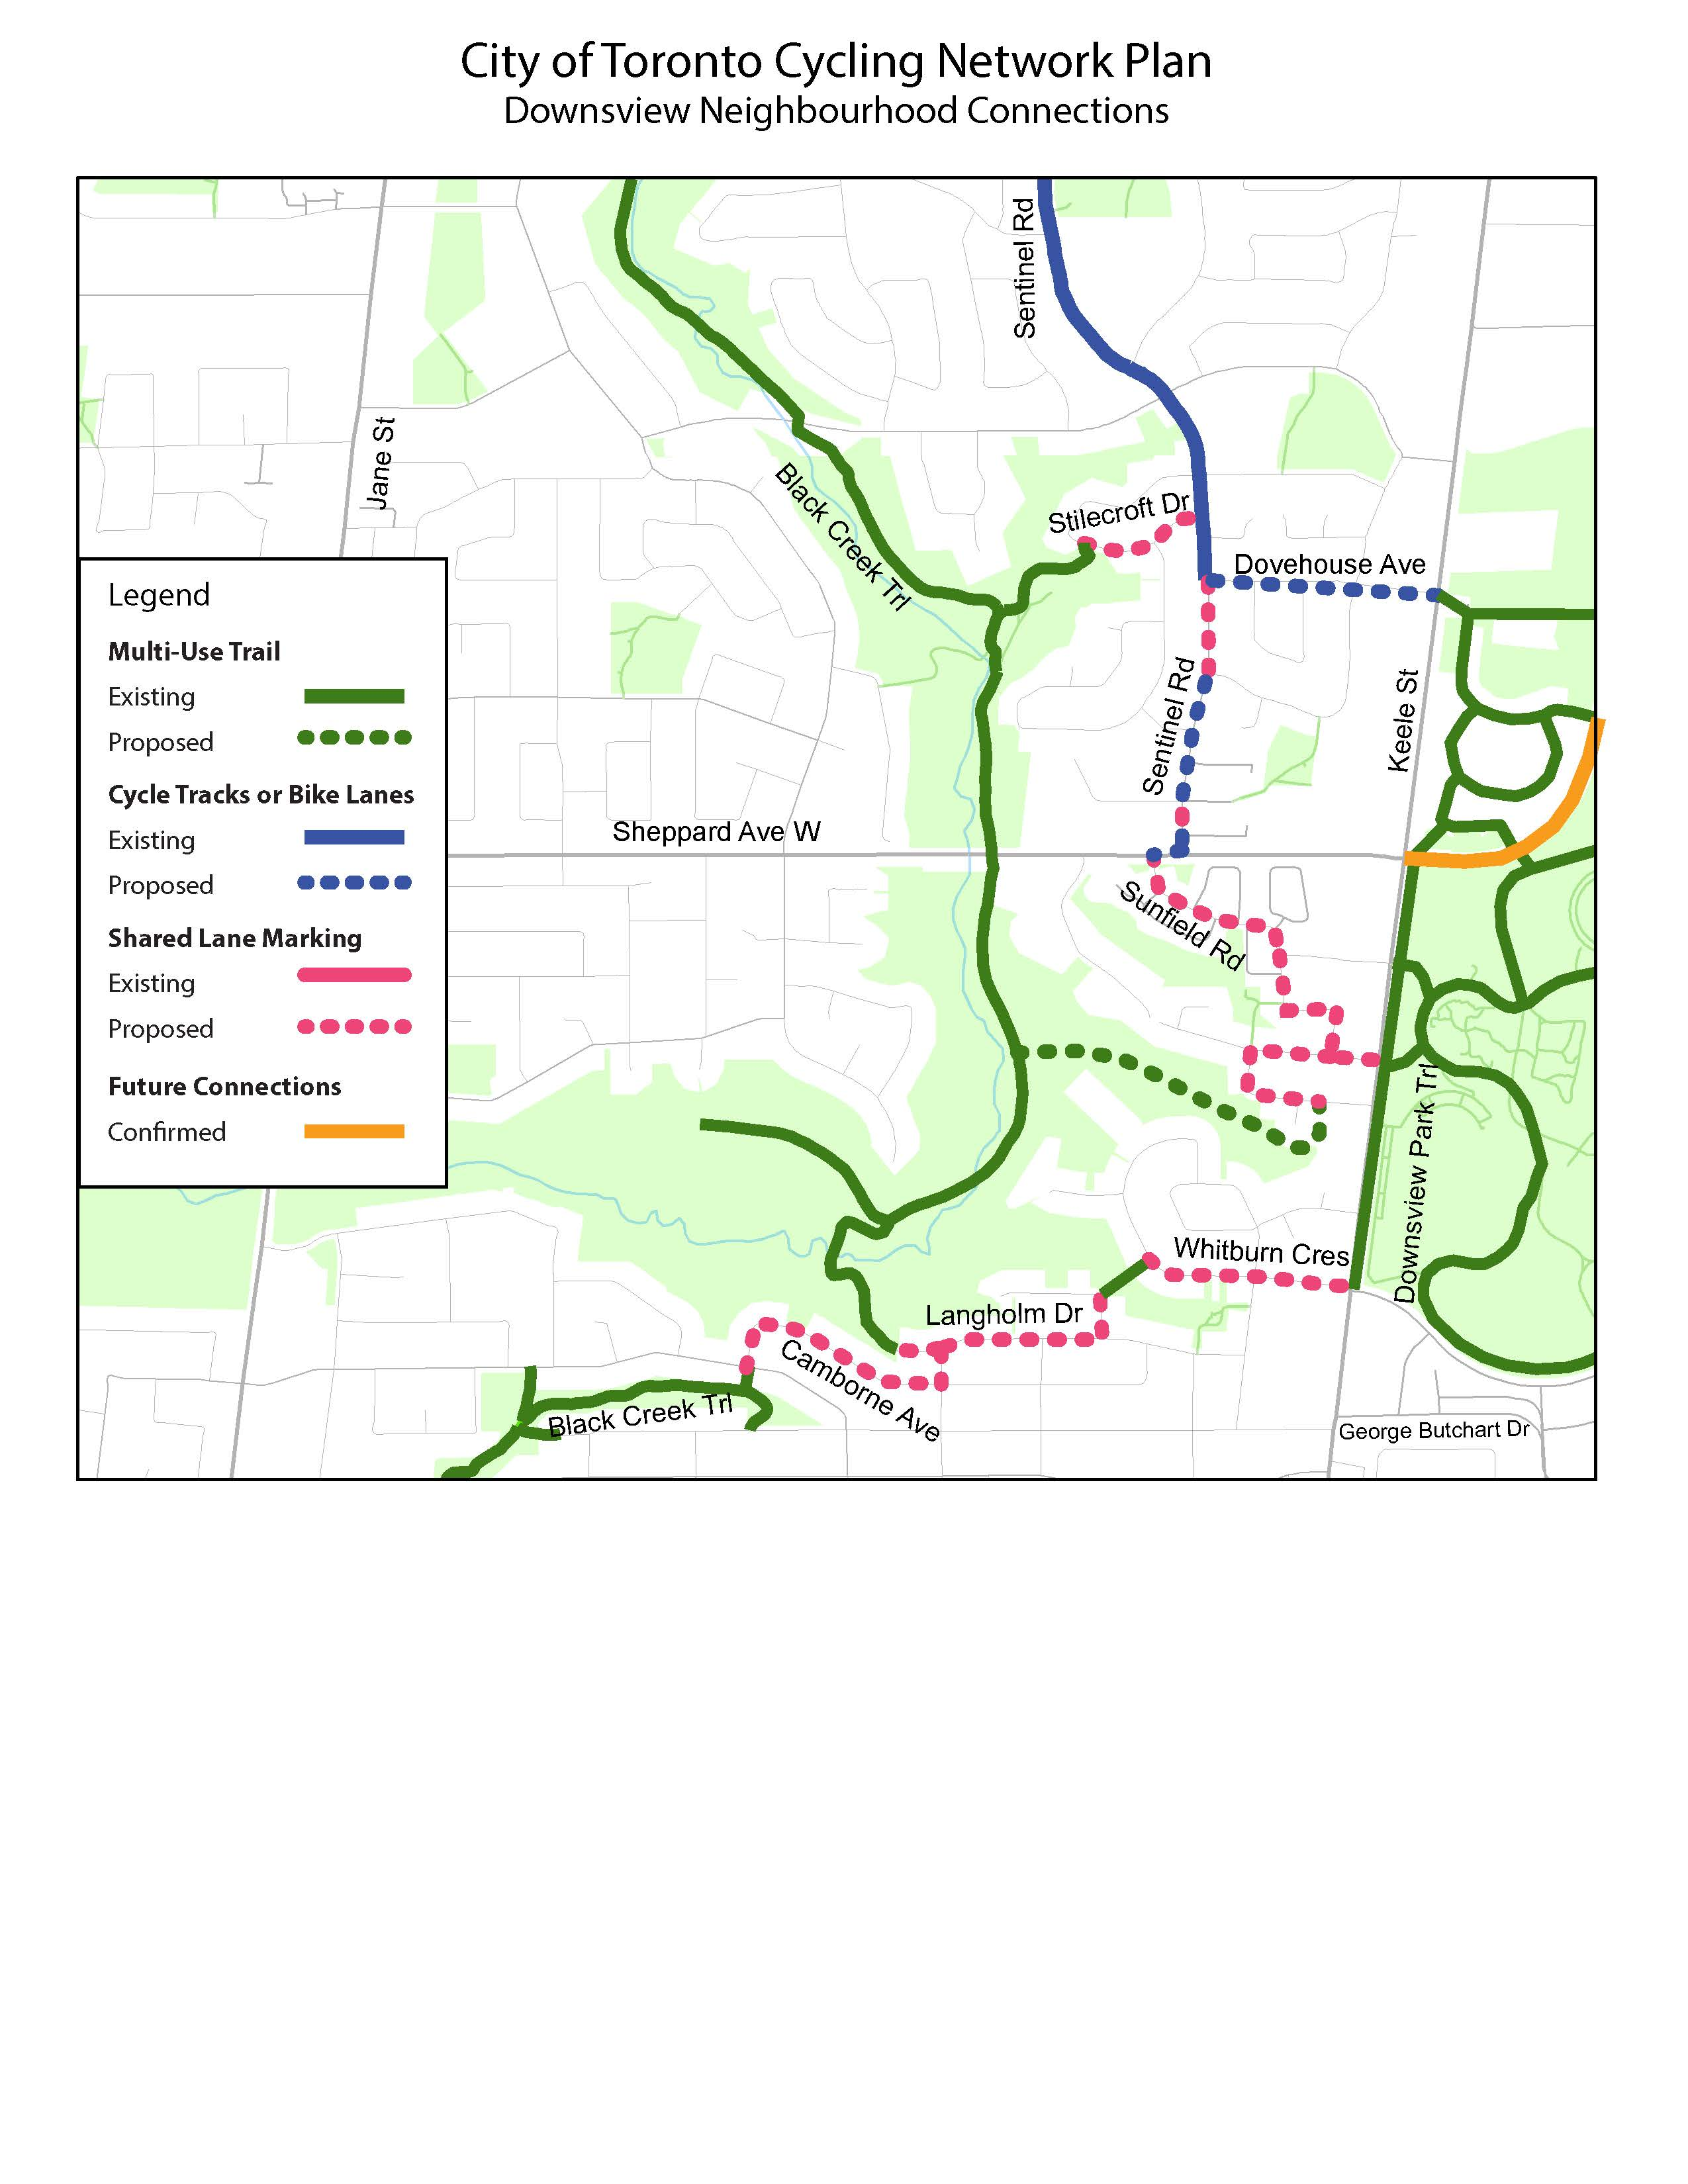 This is a map of the Downsview Cycling Connections. It shows the existing Black Creek Trail and Downsview Park trails, and the existing bike lane on Sentinel Road. It also shows the following proposed bikeways that would connect to the existing trails: a shared lane on Stilecroft Drive from the Black Creek Trail to Sentinel Road; a bike lane on Dovehouse Avenue from Sentinel Road to Keele Street; a bike lane and shared lane on Sentinel Road from Dovehouse Avenue to Sheppard Avenue; and shared lanes on Sunfield Road, Whitburn Crescent, Langholm Drive, and Camborne Avenue that connect to the Black Creek Trail, Keele Street and the Downsview Park Trails.